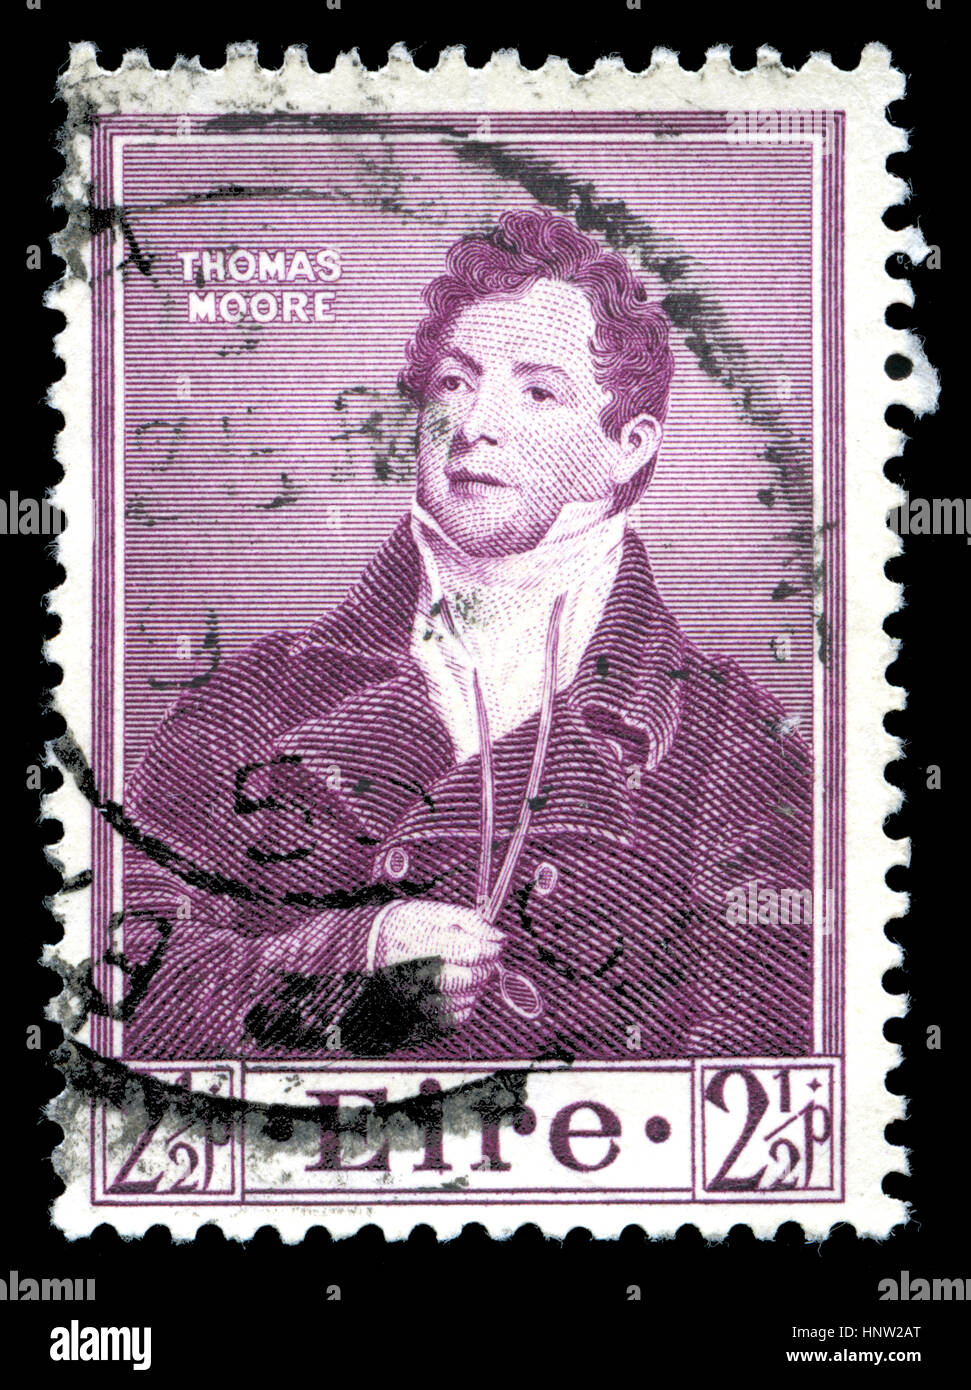 Postmarked stamp from Ireland in the Death Centenary of Thomas Moore series issued in 1952 - Stock Image